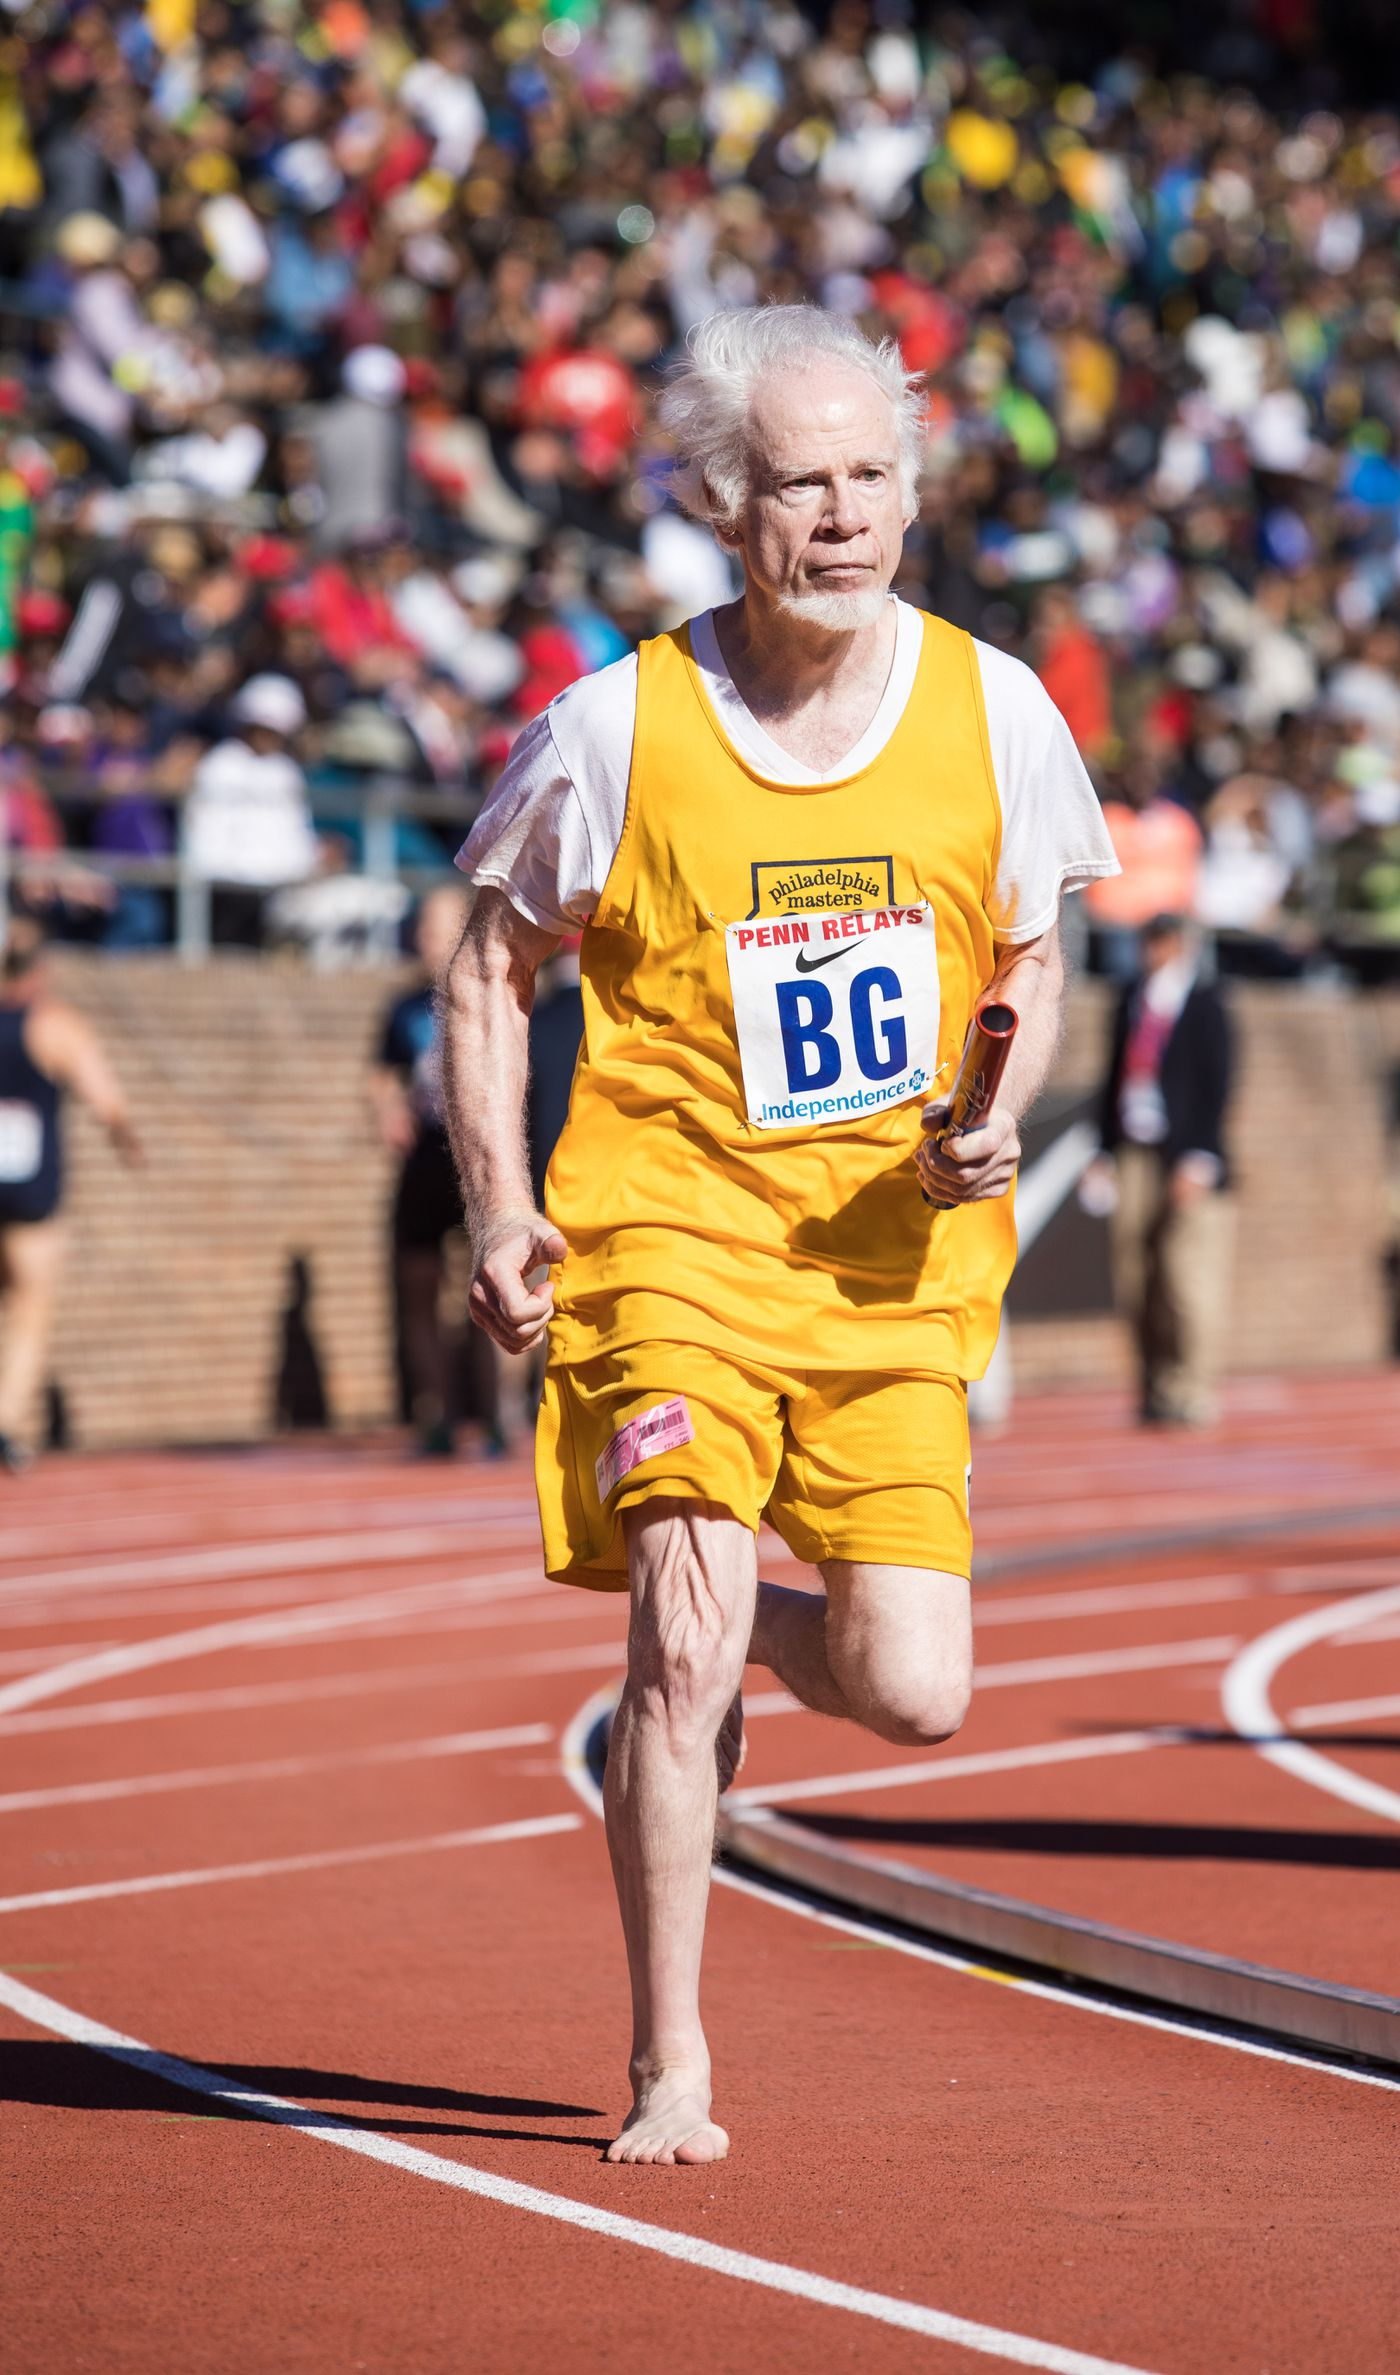 William Rhoad, 78, who runs barefoot, spent most of his life in Baltimore. He joined the Philadelphia Masters club about three years ago.